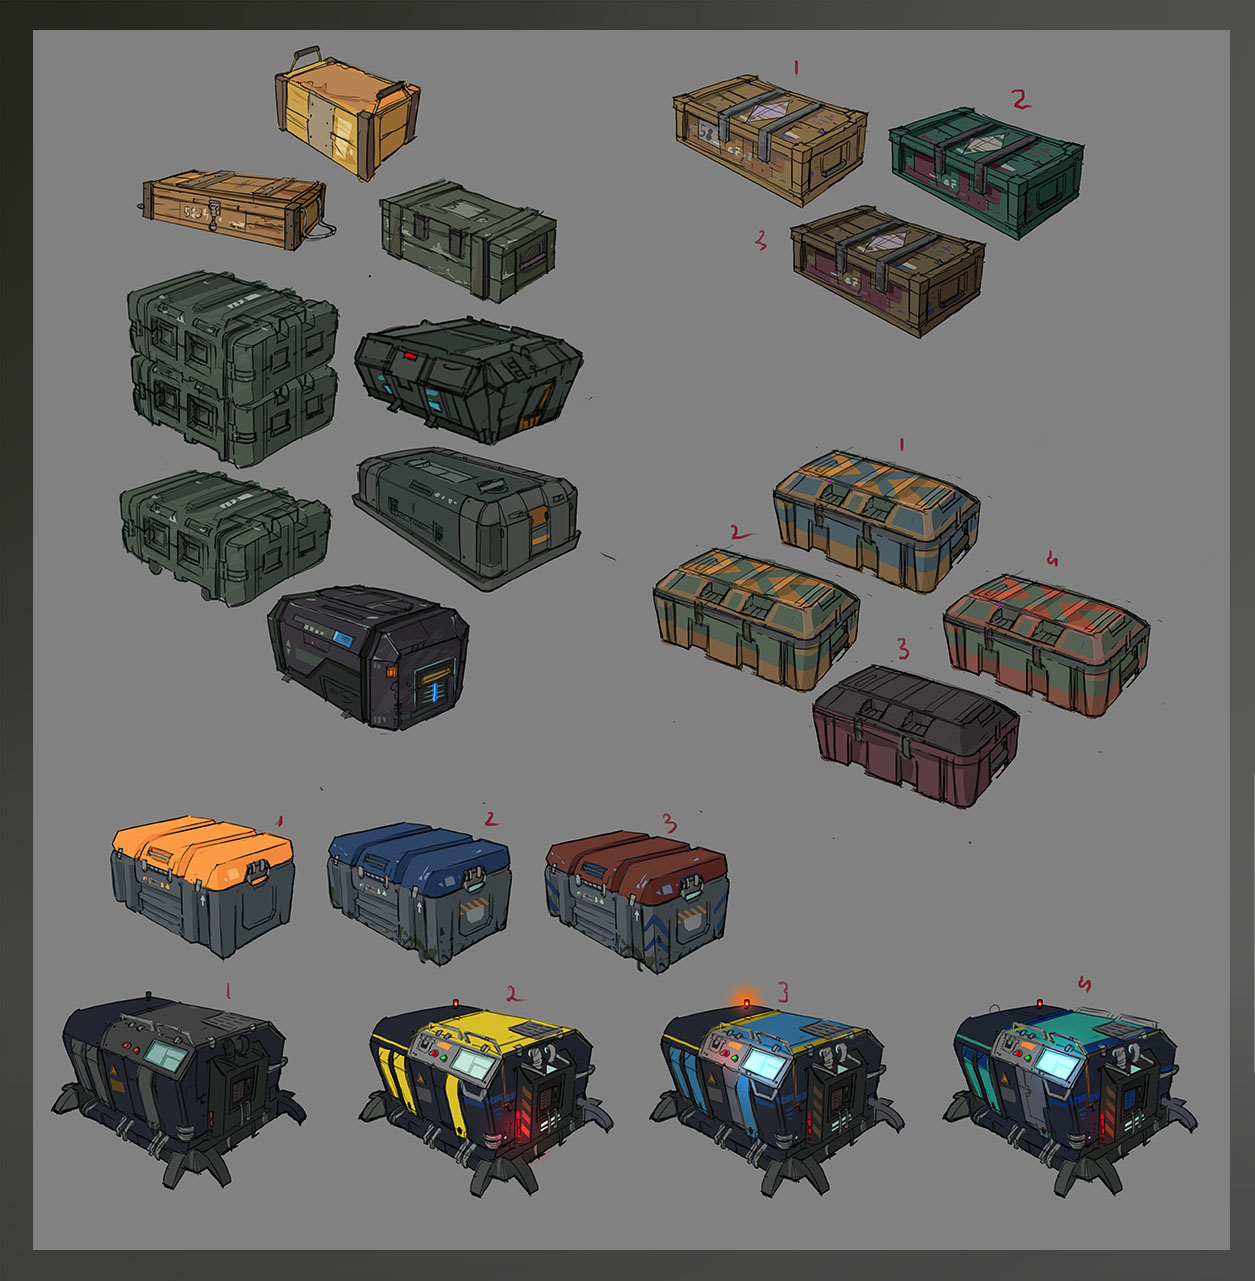 Drone_Crates_sketches2.jpg